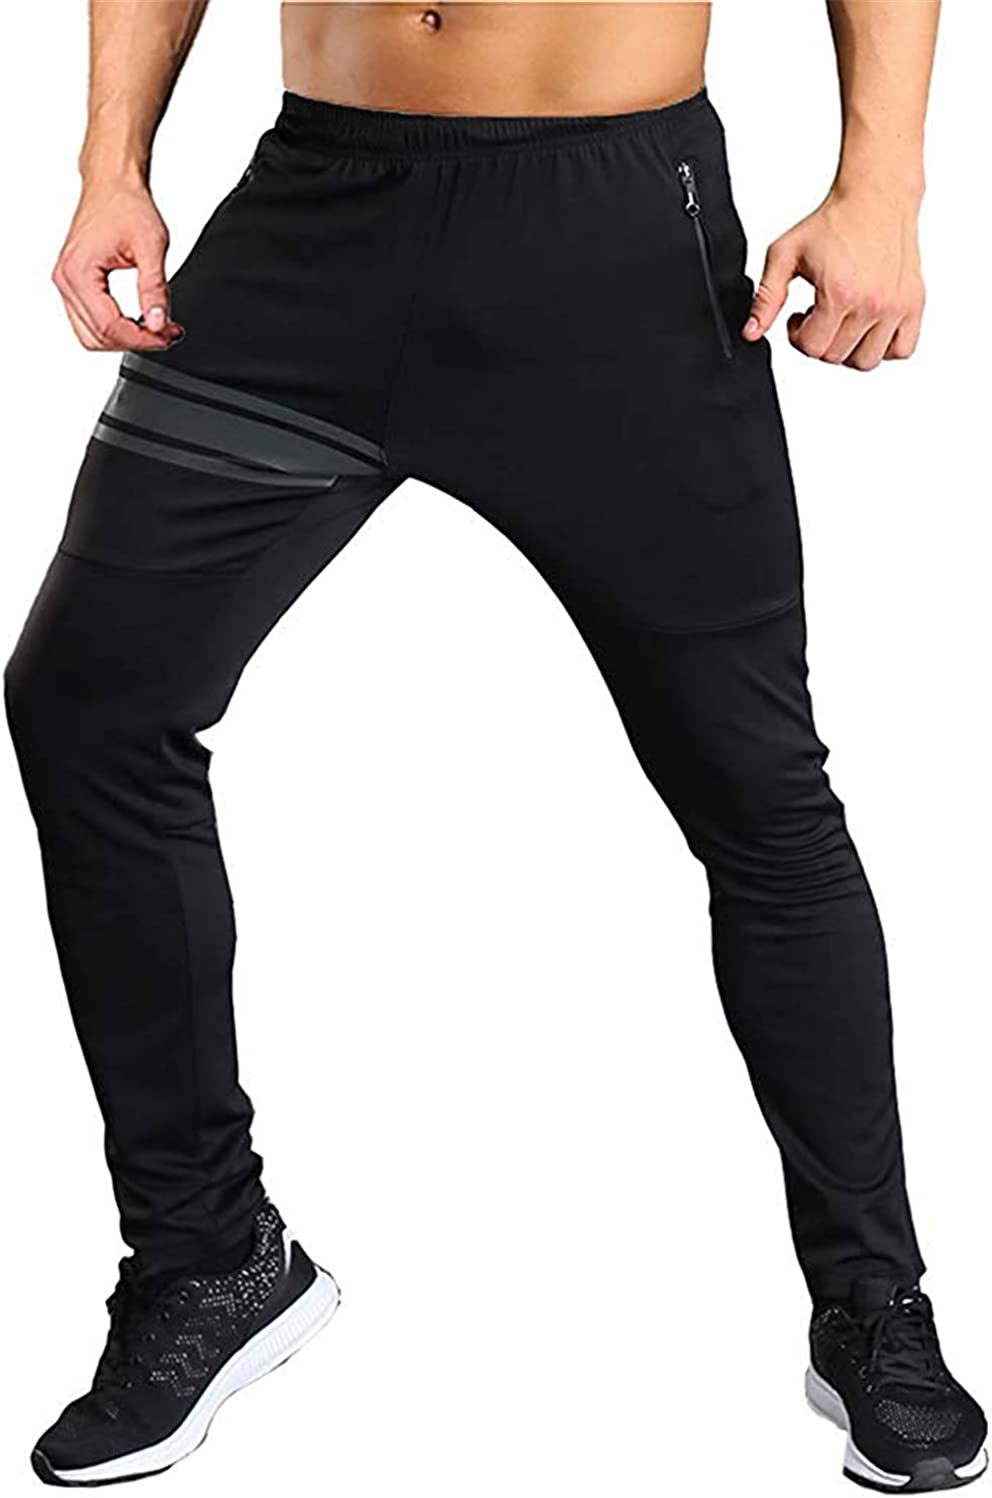 Meimeioo Mens Gym Jogger Pants Training Workout Slim fit Sweatpants Causal